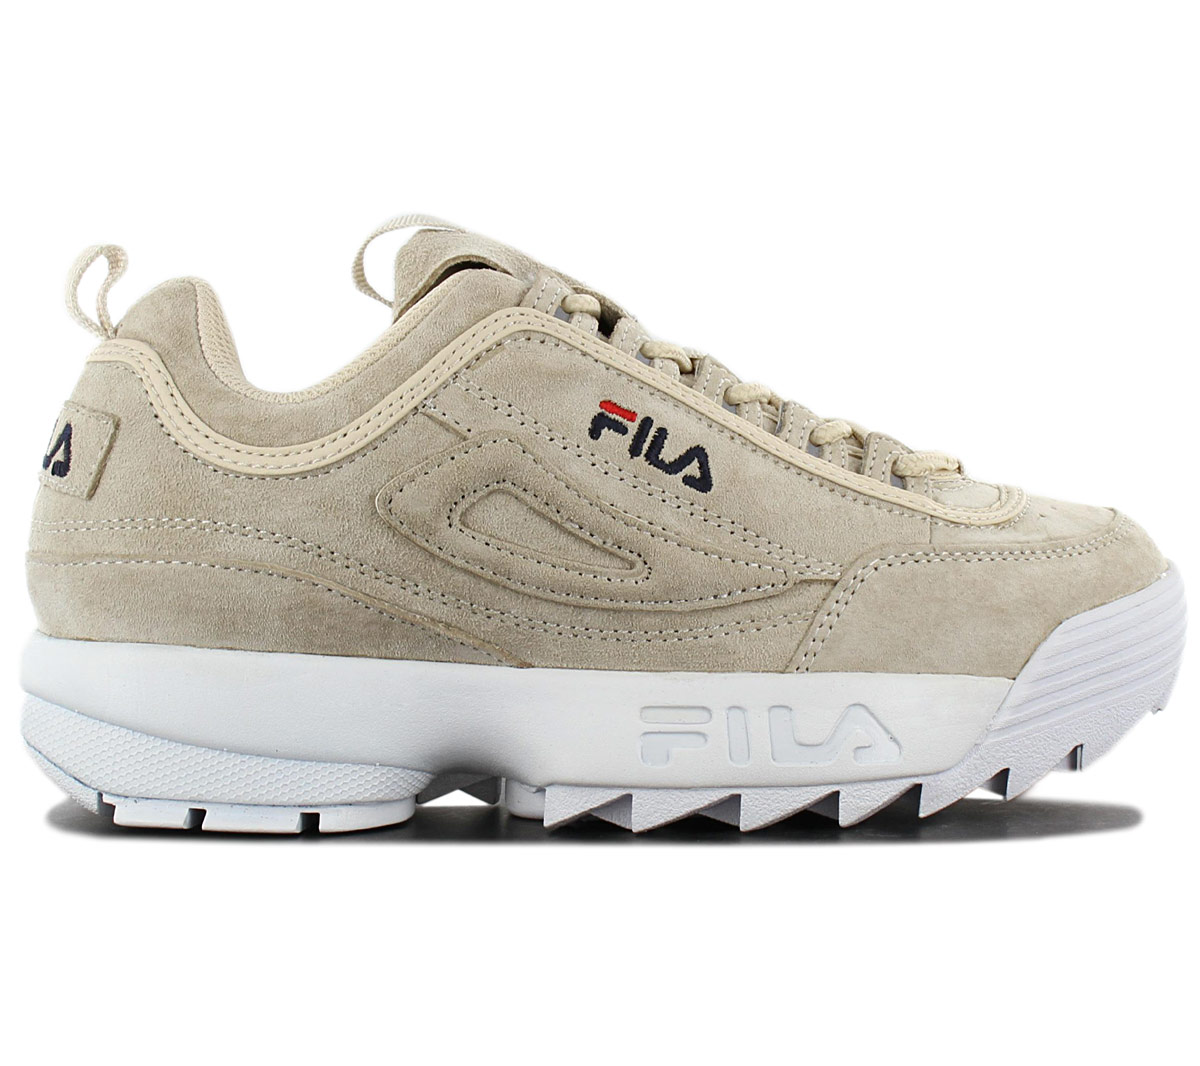 Details about Fila Disruptor S Low Women's Sneaker 1010605.90R Leather Gray Trainers Trainers